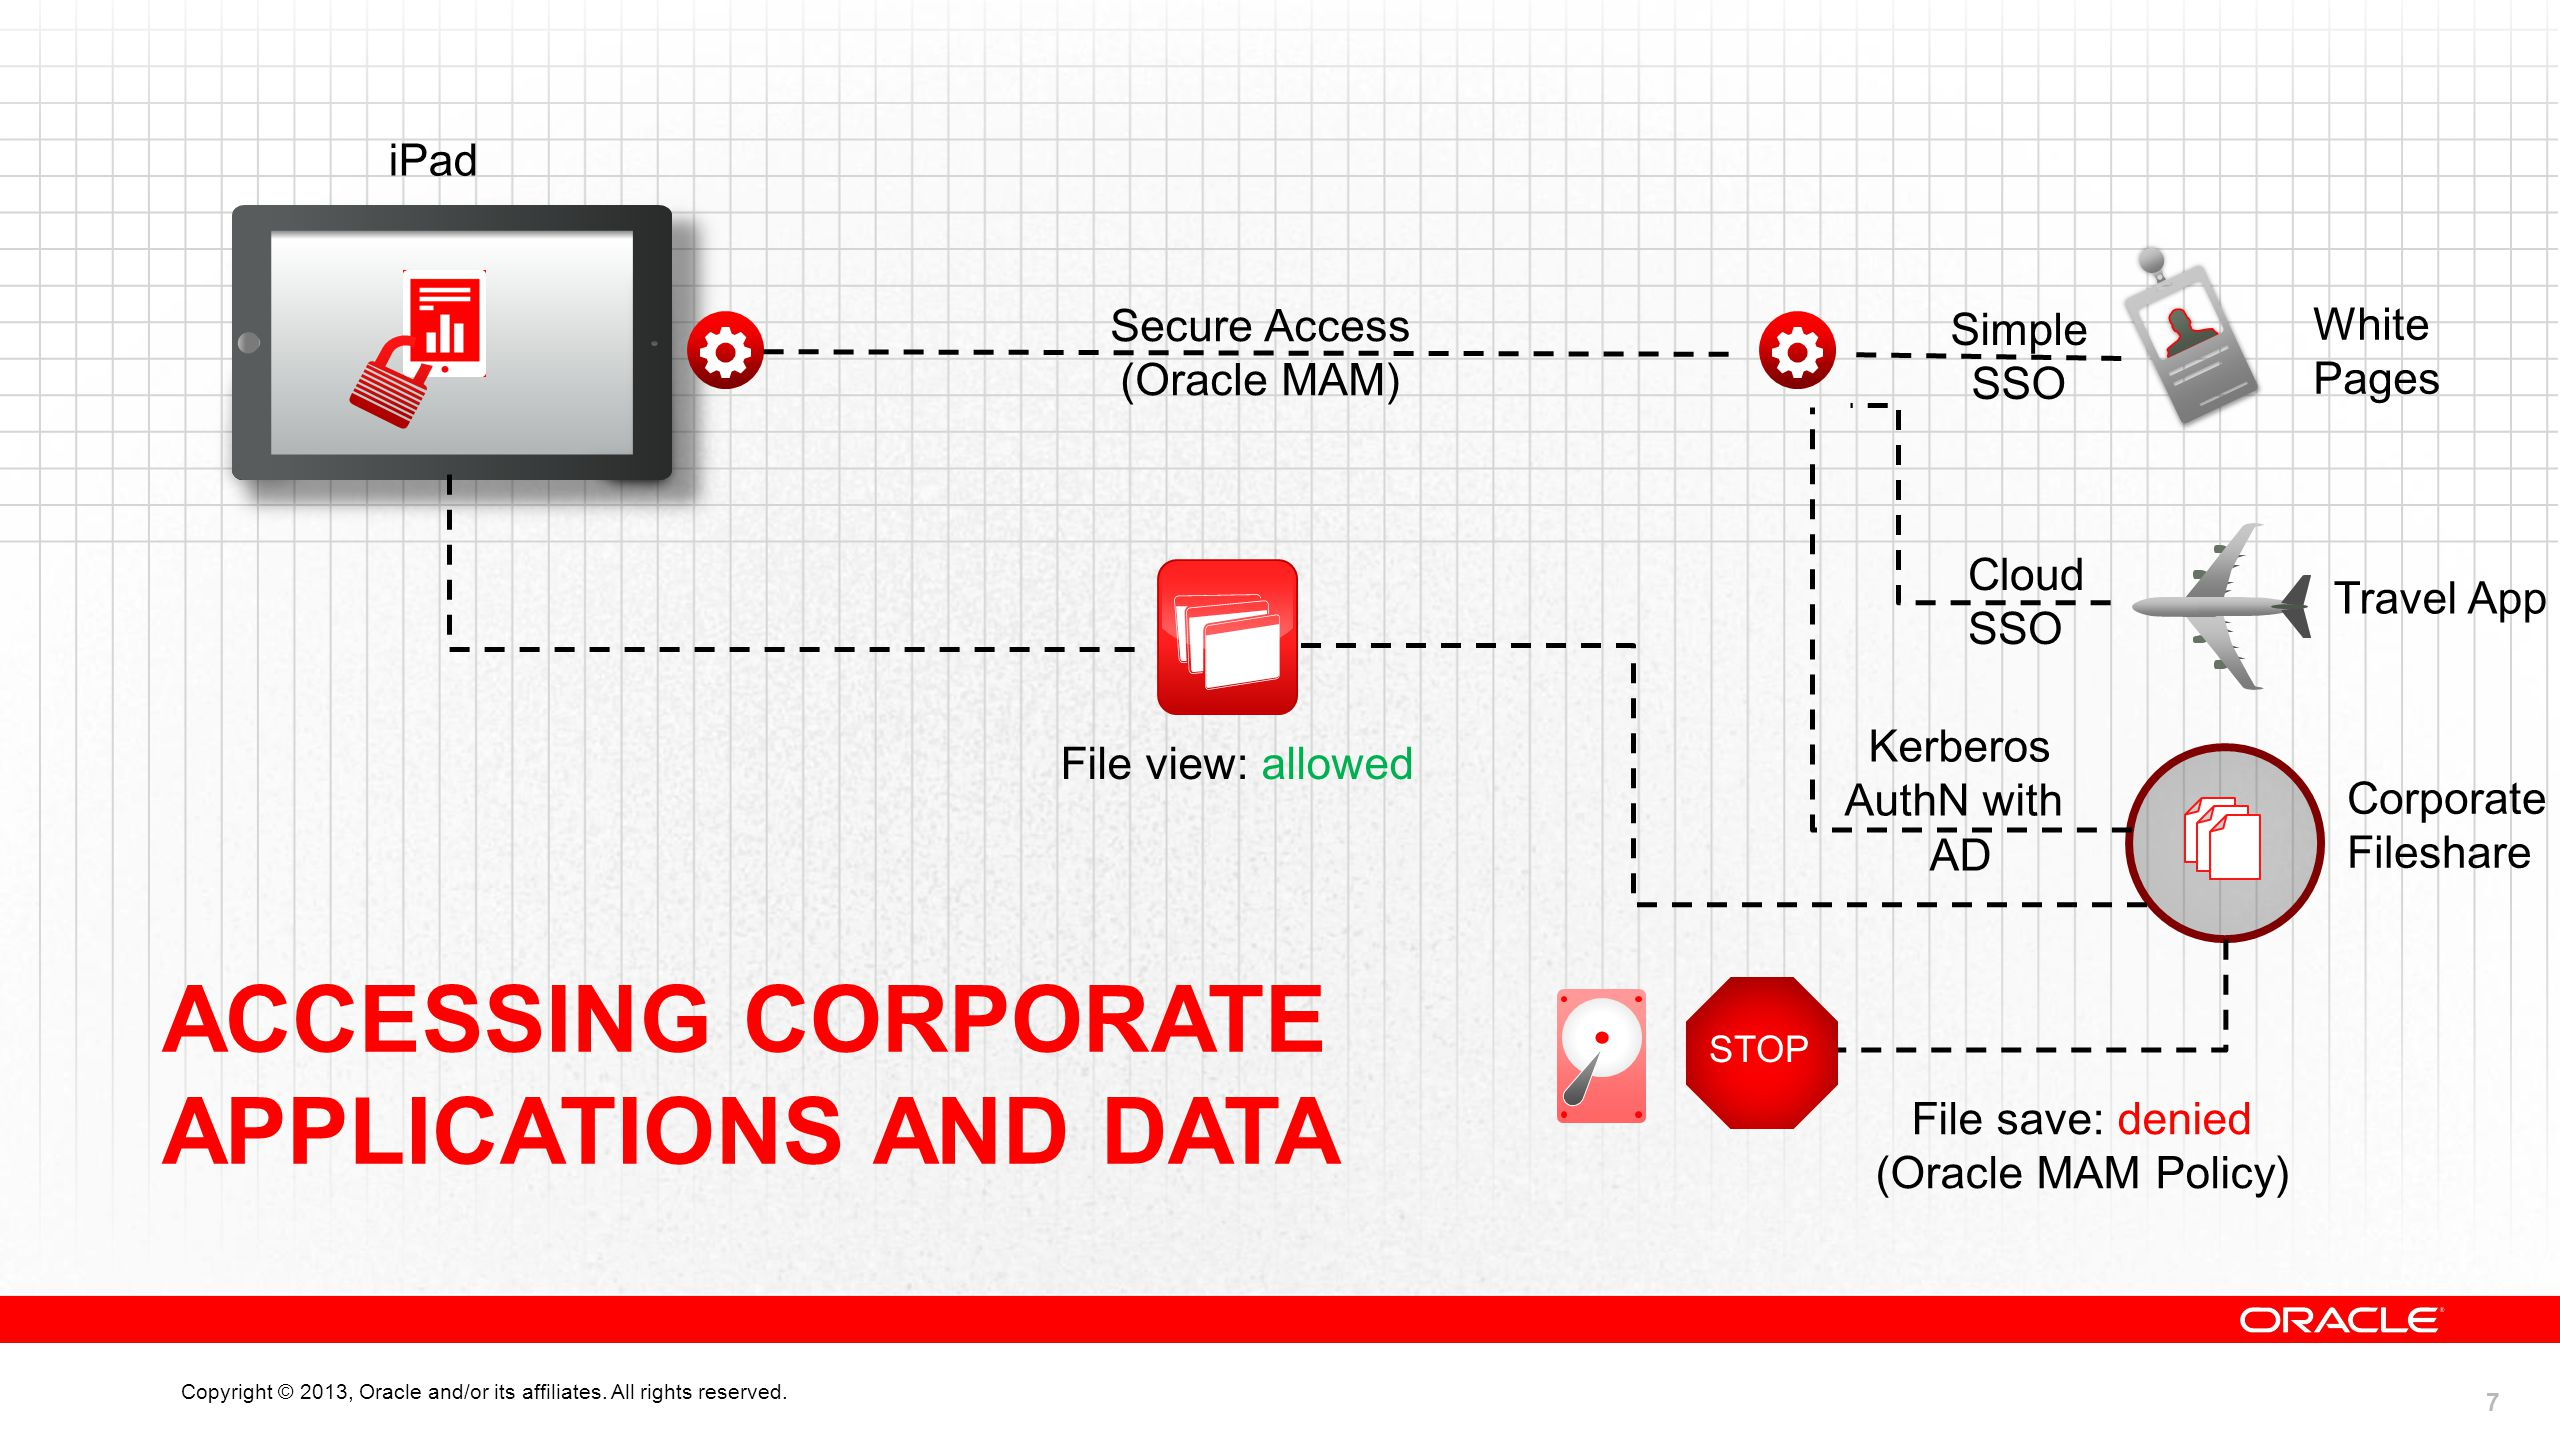 7 Copyright © 2013, Oracle and/or its affiliates. All rights reserved. ACCESSING CORPORATE APPLICATIONS AND DATA Secure Access (Oracle MAM) Corporate